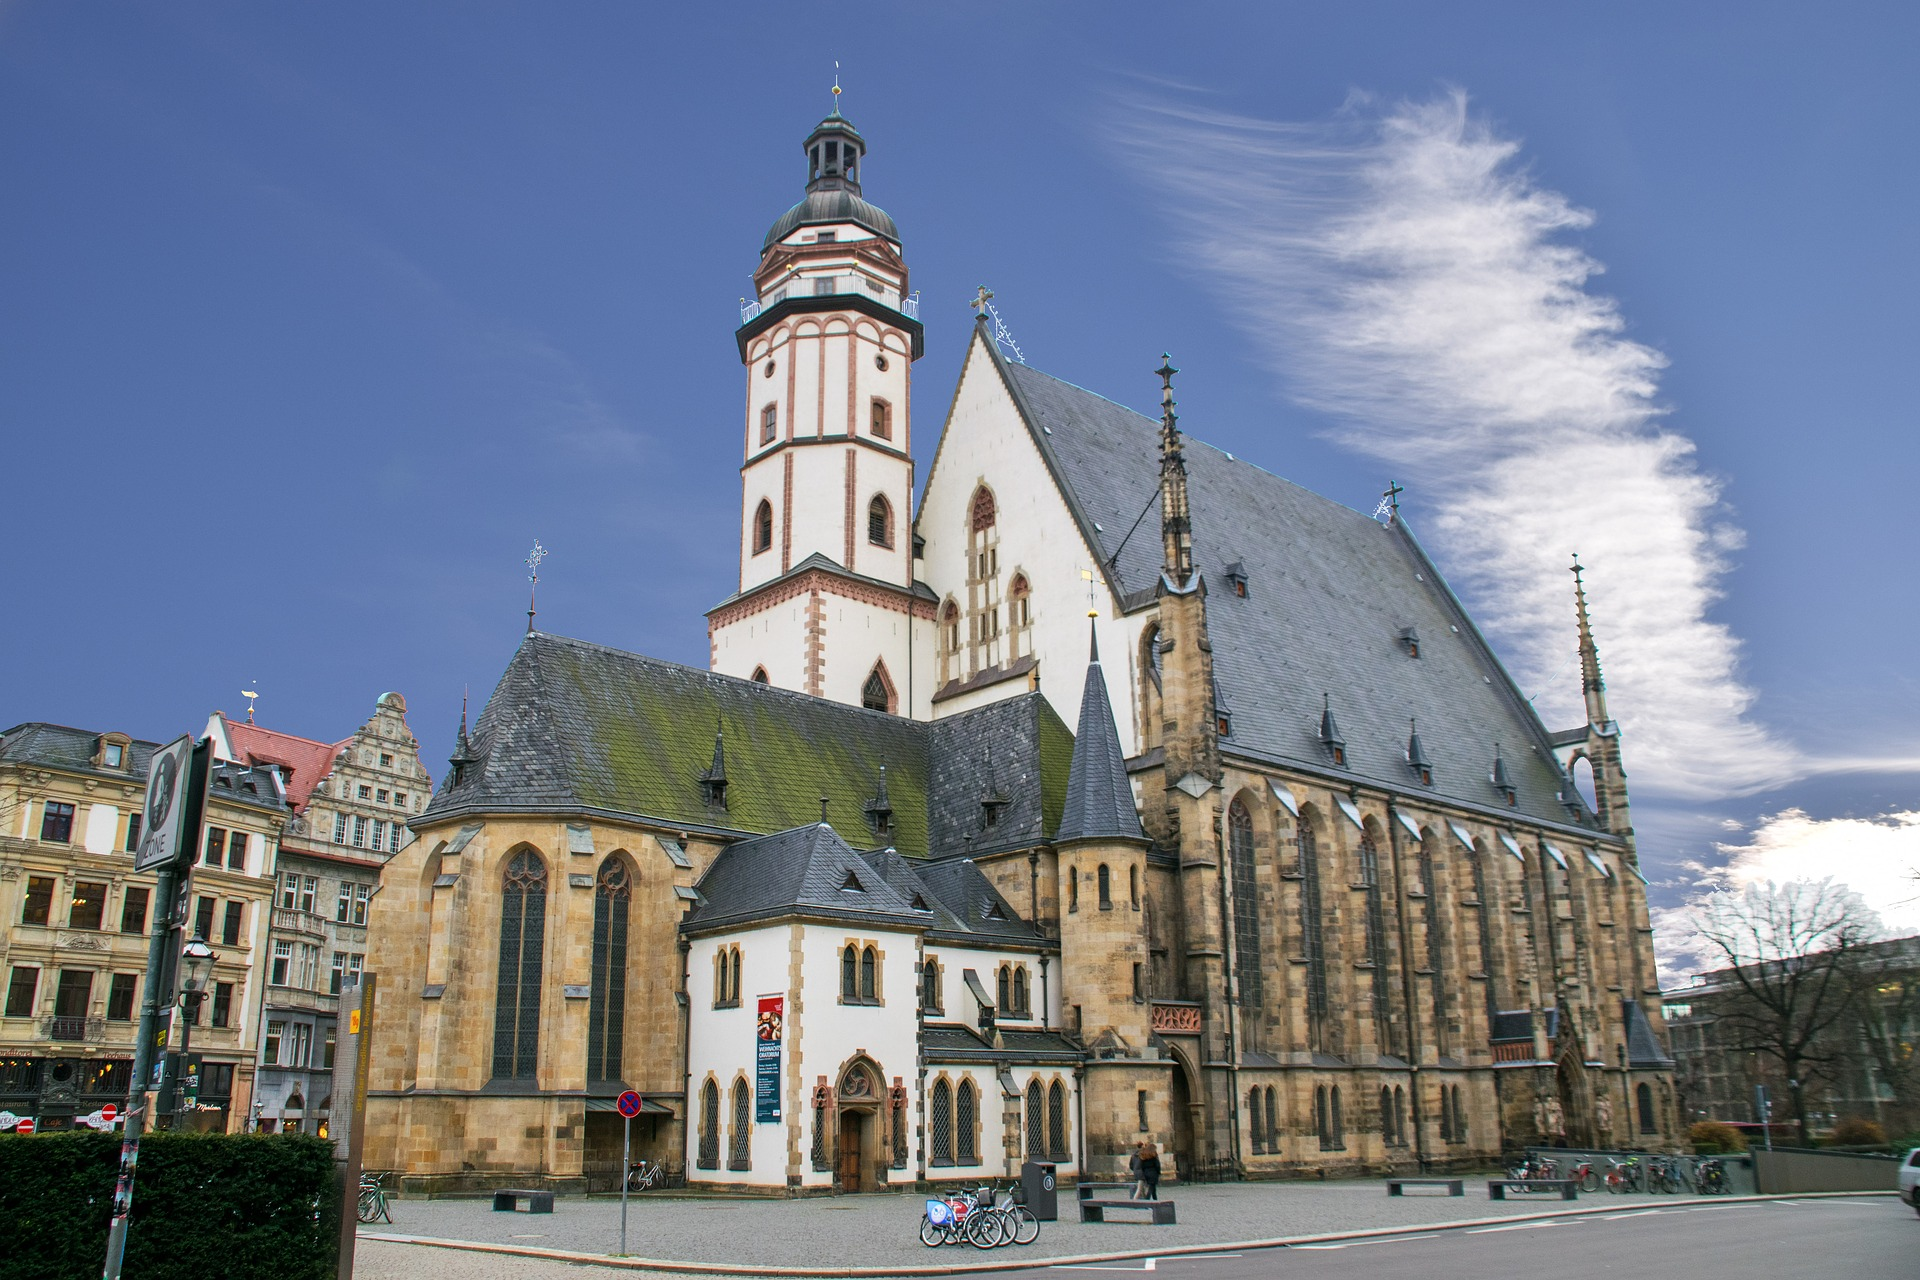 St. Thomas Church in Leipzig, Germany.